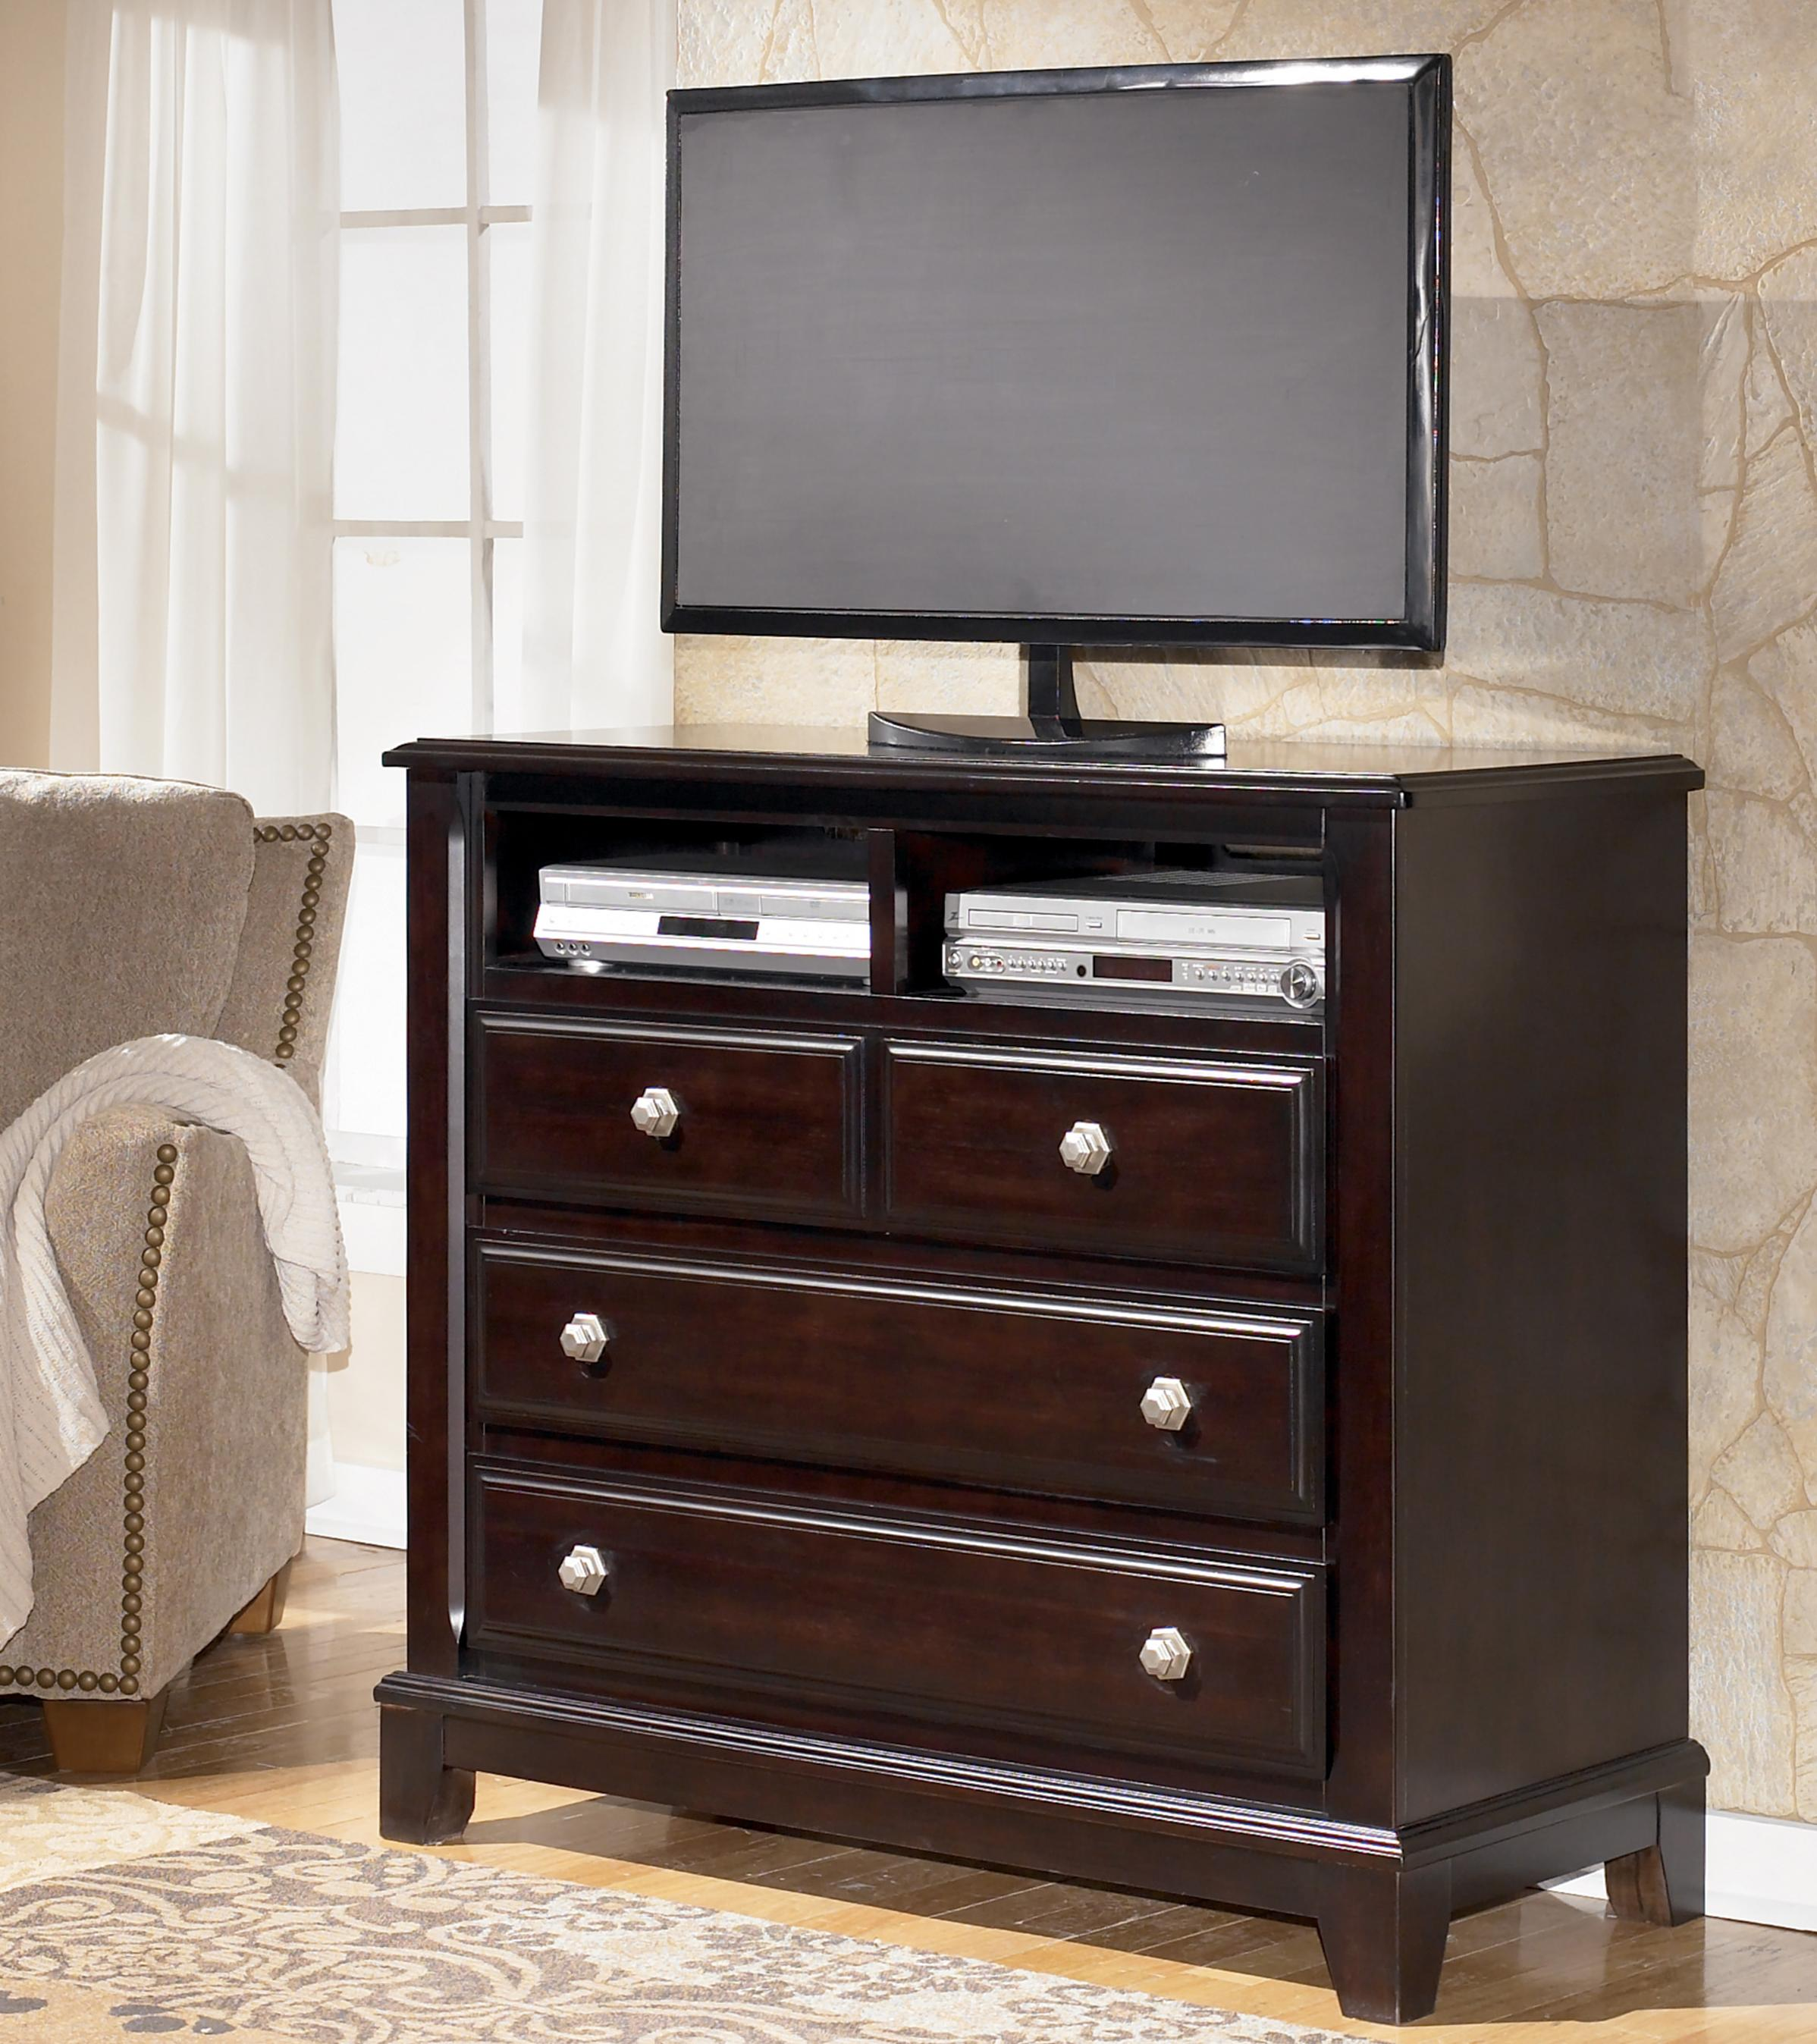 Signature Design by Ashley Ridgley Media Chest - Item Number: B520-39